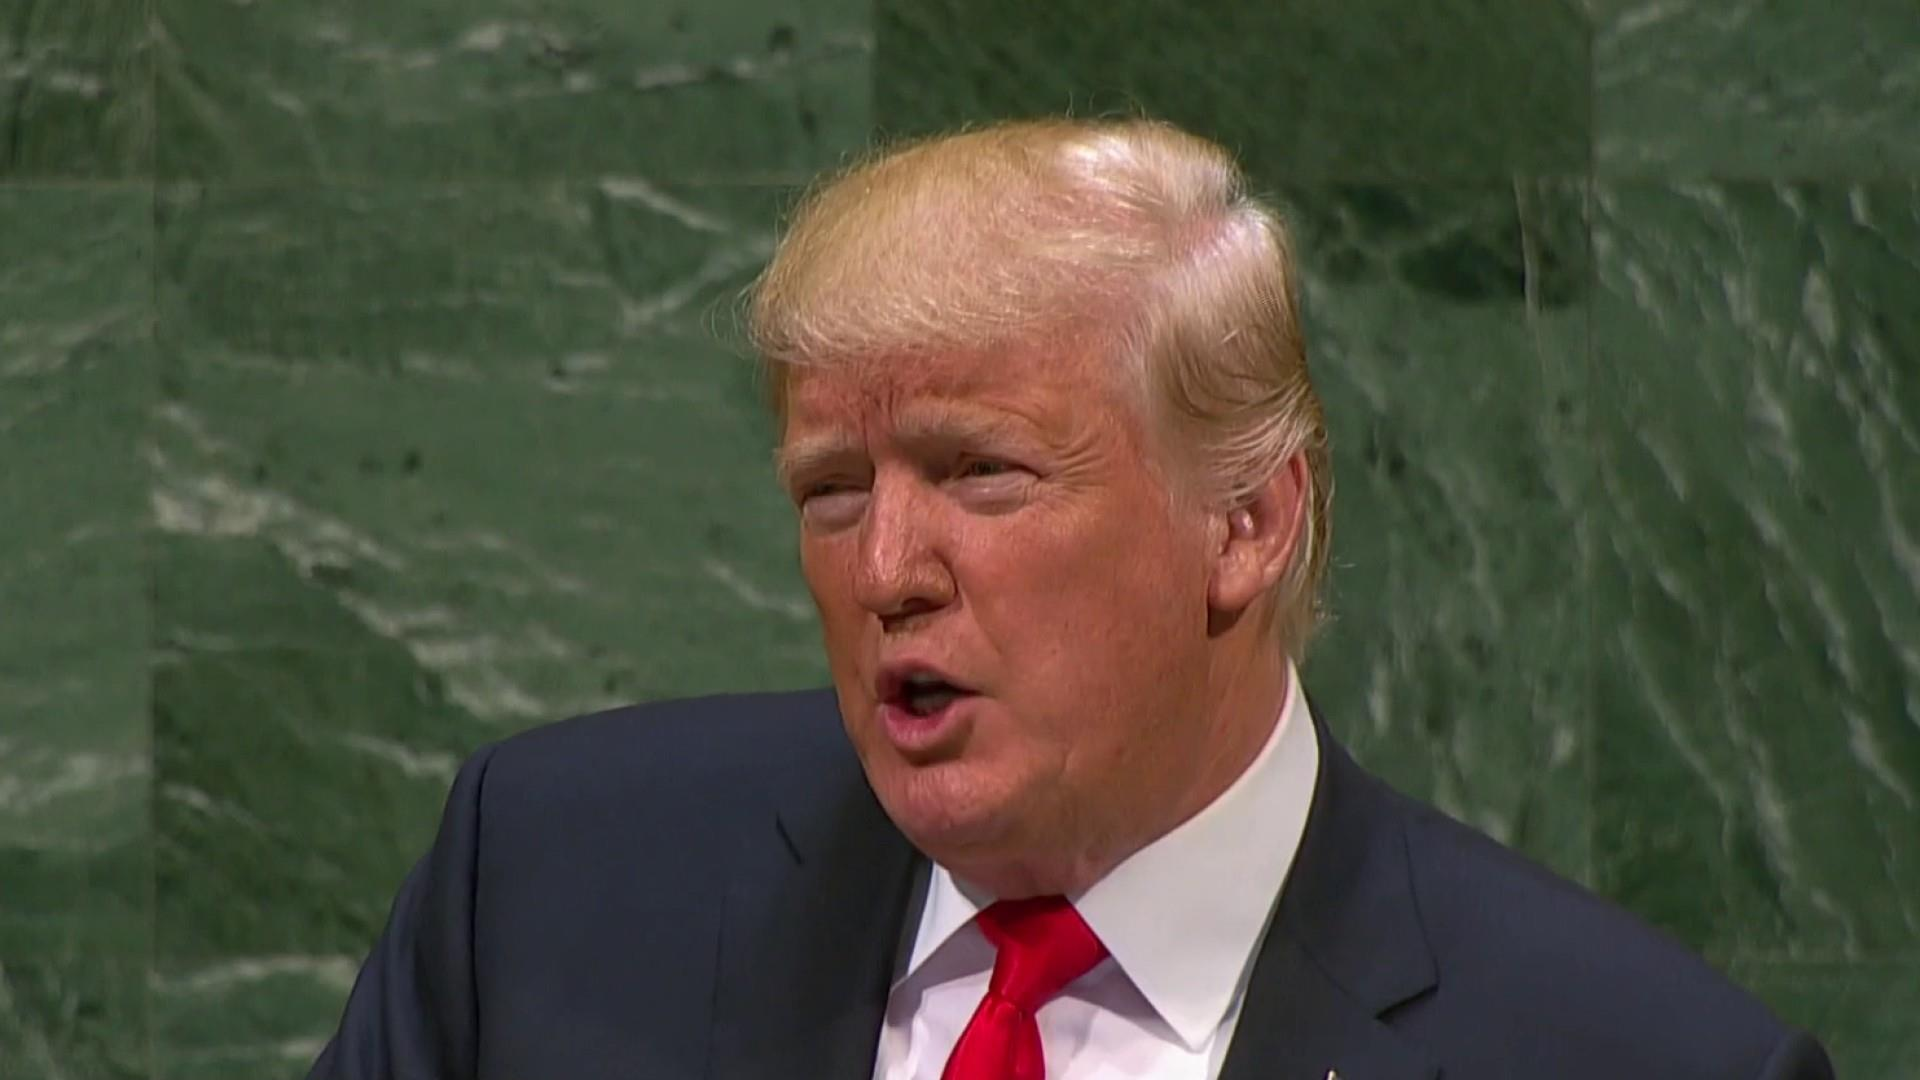 Trump bashes Iran in UN speech